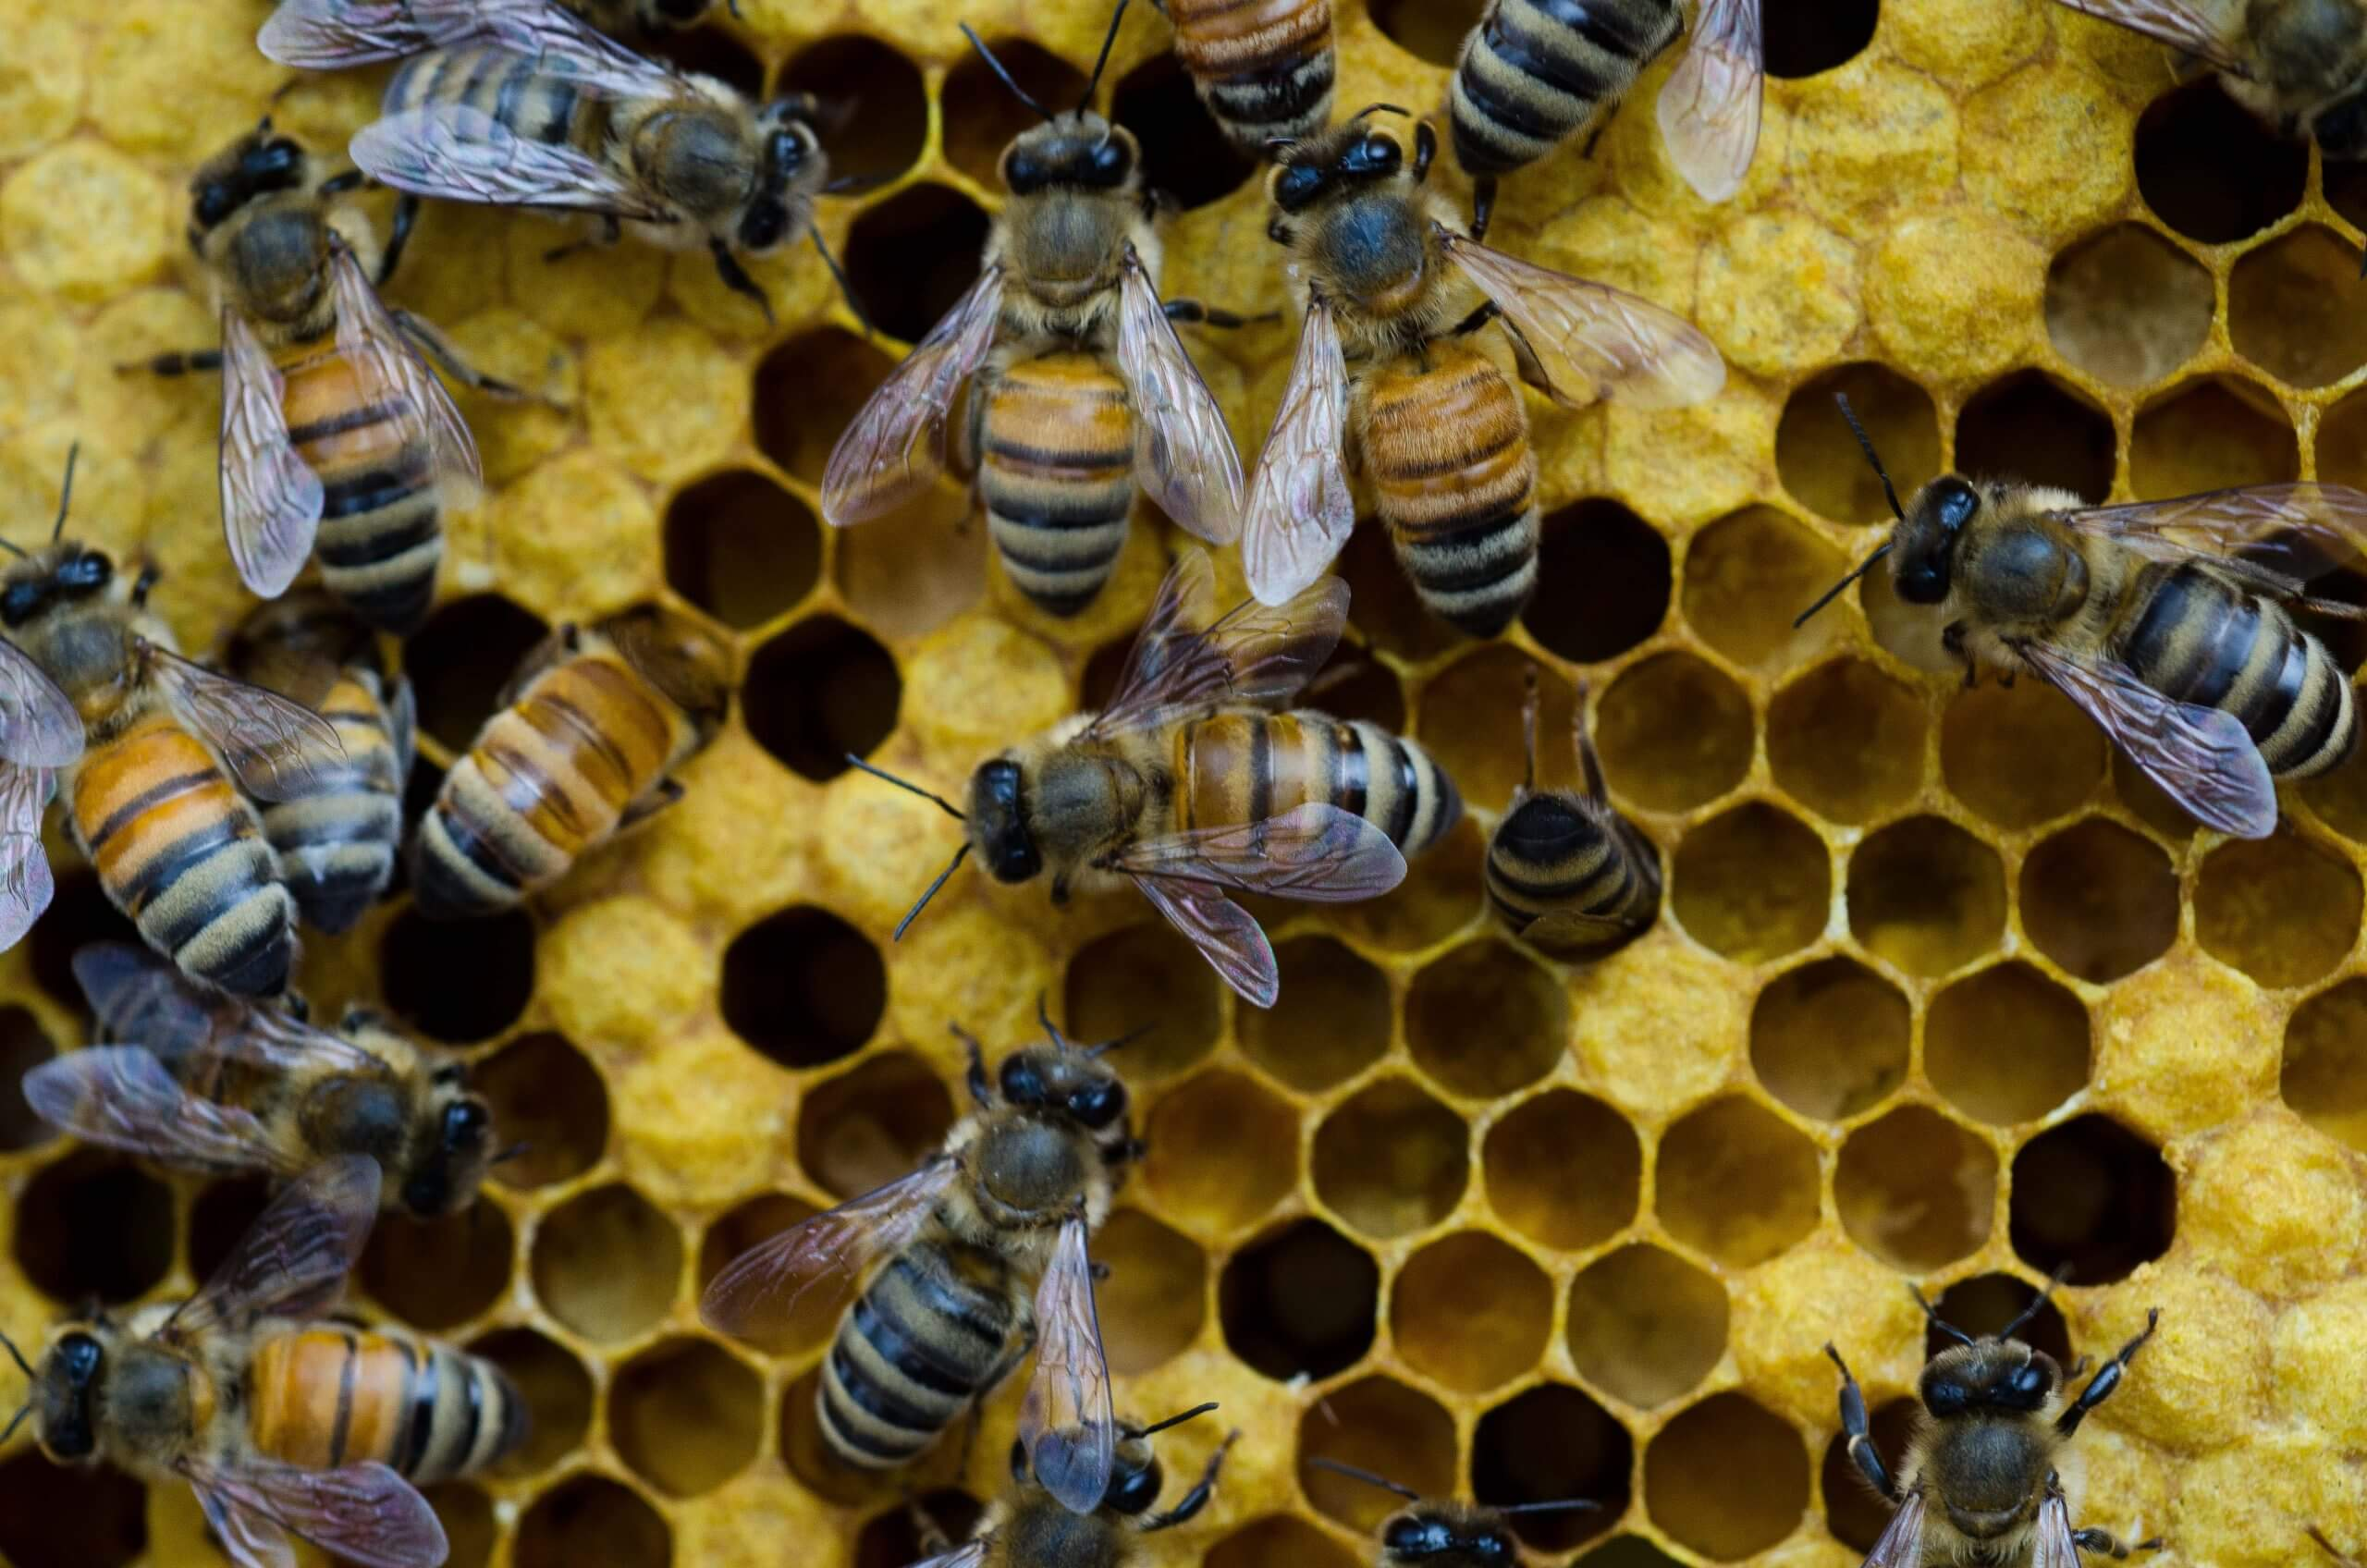 Bt insect toxin in GM crops 'has no negative effects on honey bees,' study confirms